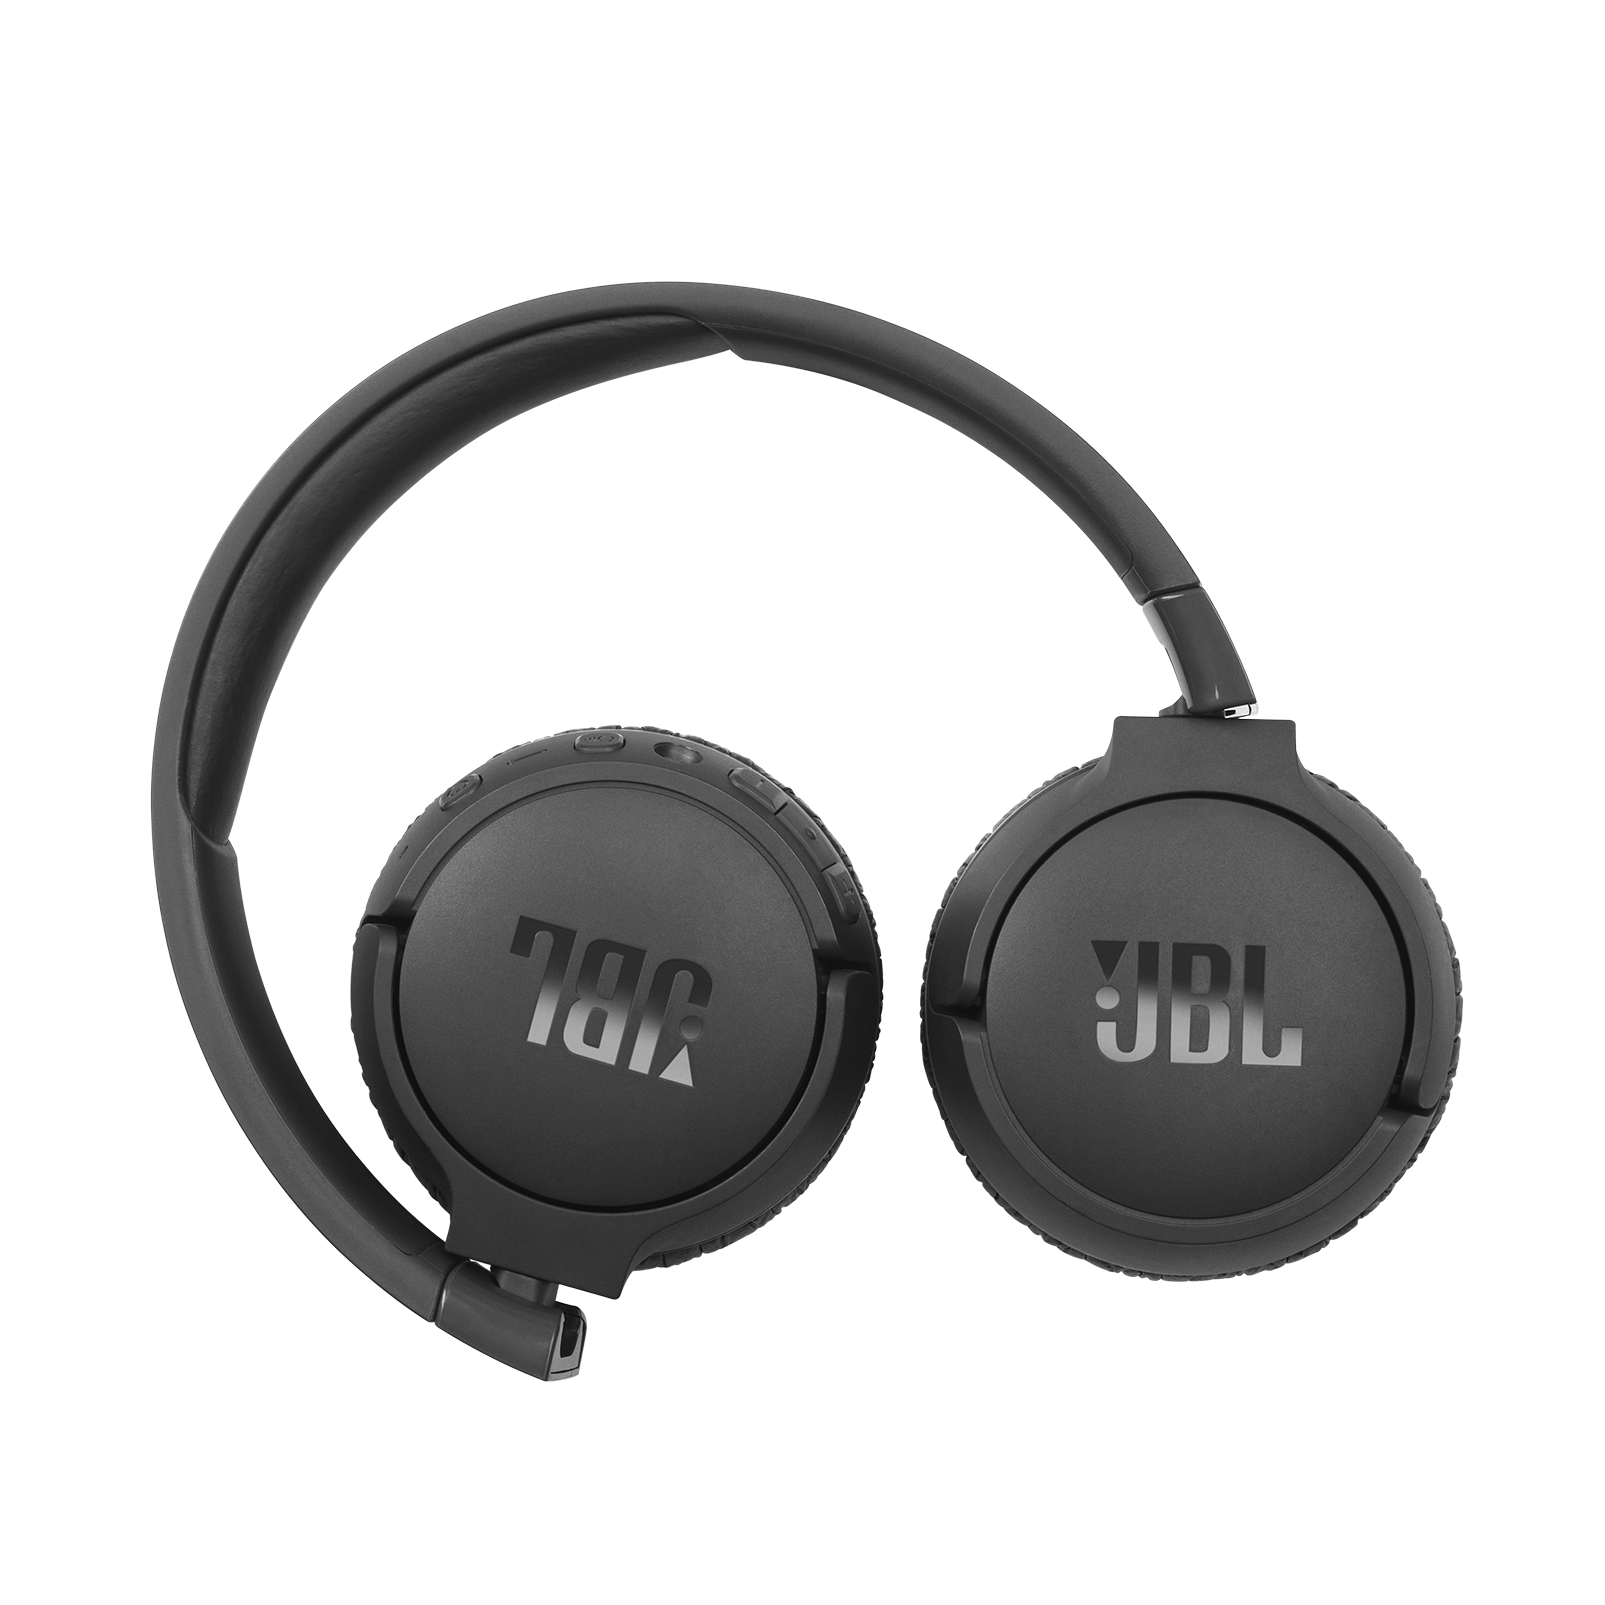 JBL Tune 660NC - Black - Wireless, on-ear, active noise-cancelling headphones. - Detailshot 2